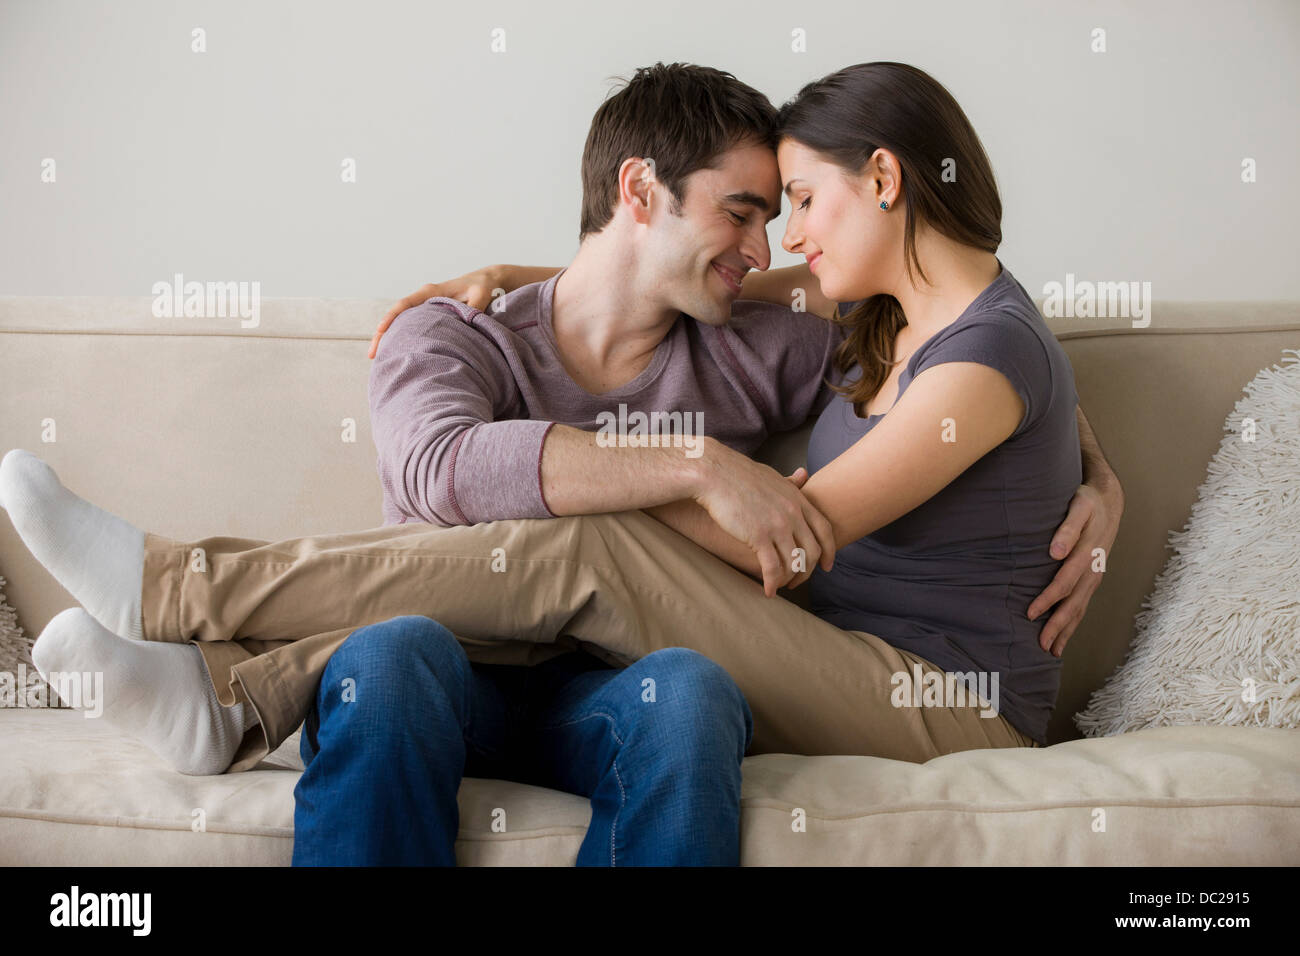 Couple on sofa, woman sitting on man's lap - Stock Image